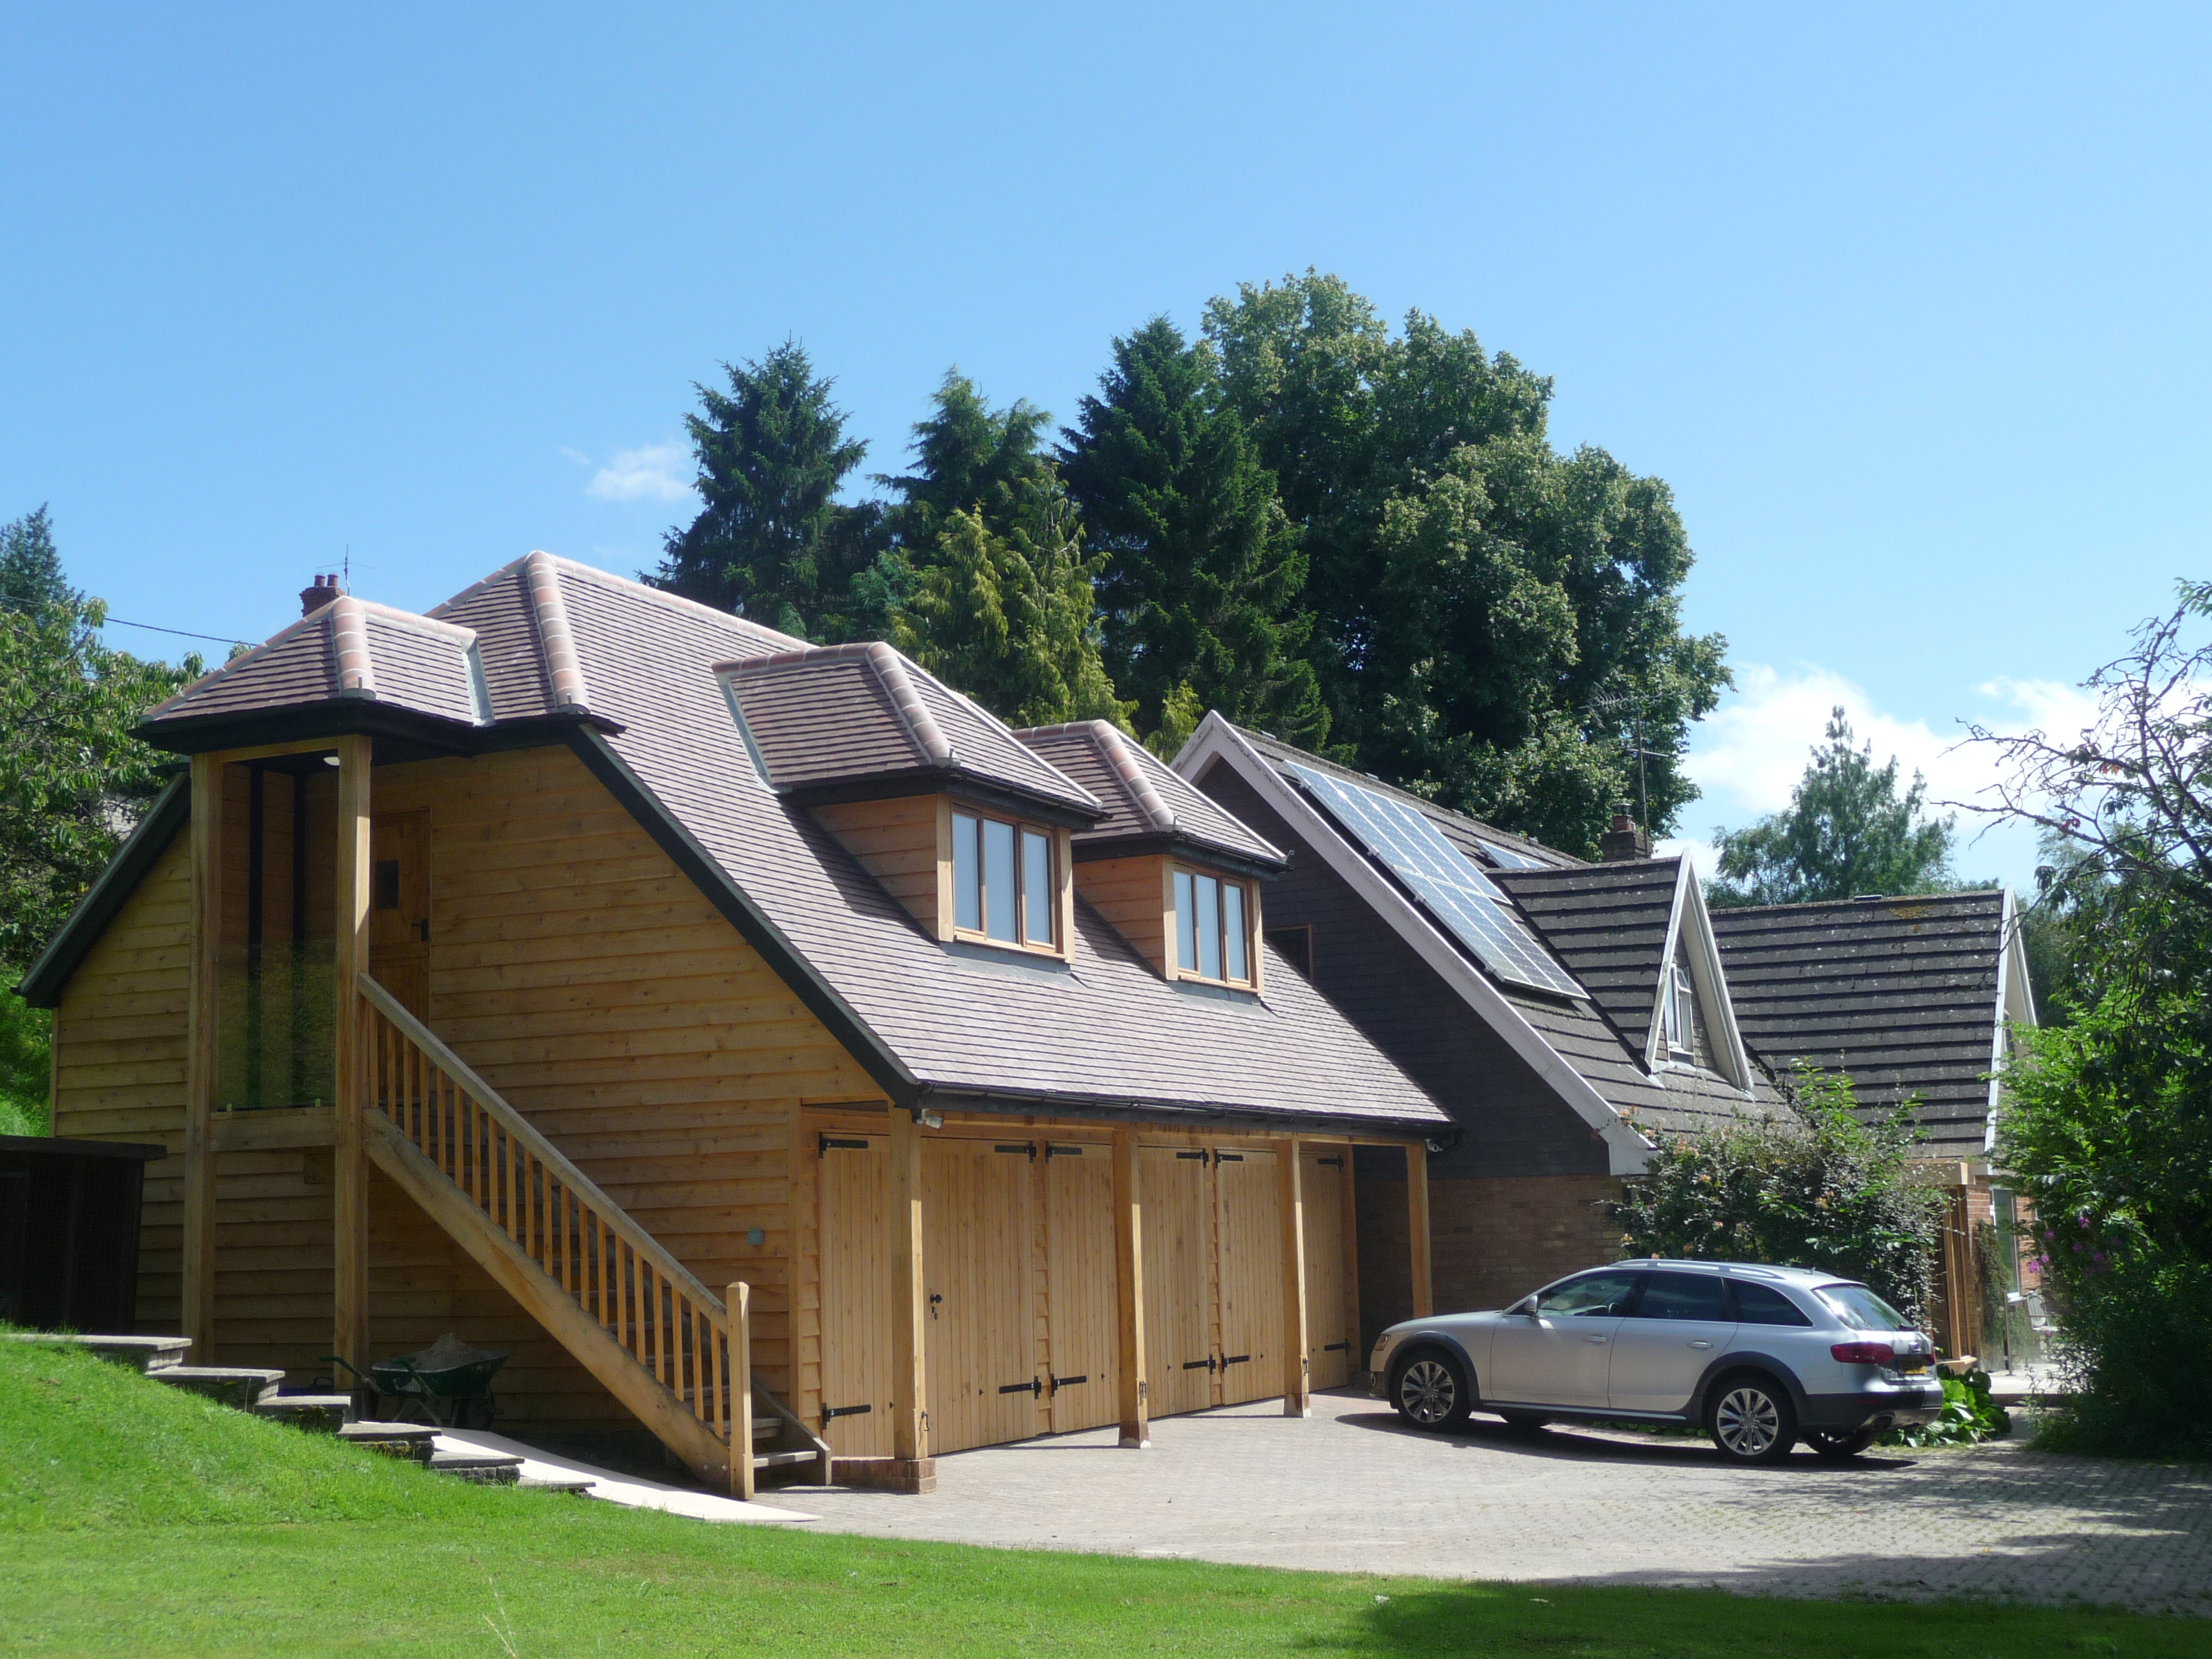 Timber framed buildings in dorset by adam slatter for Garage with accommodation